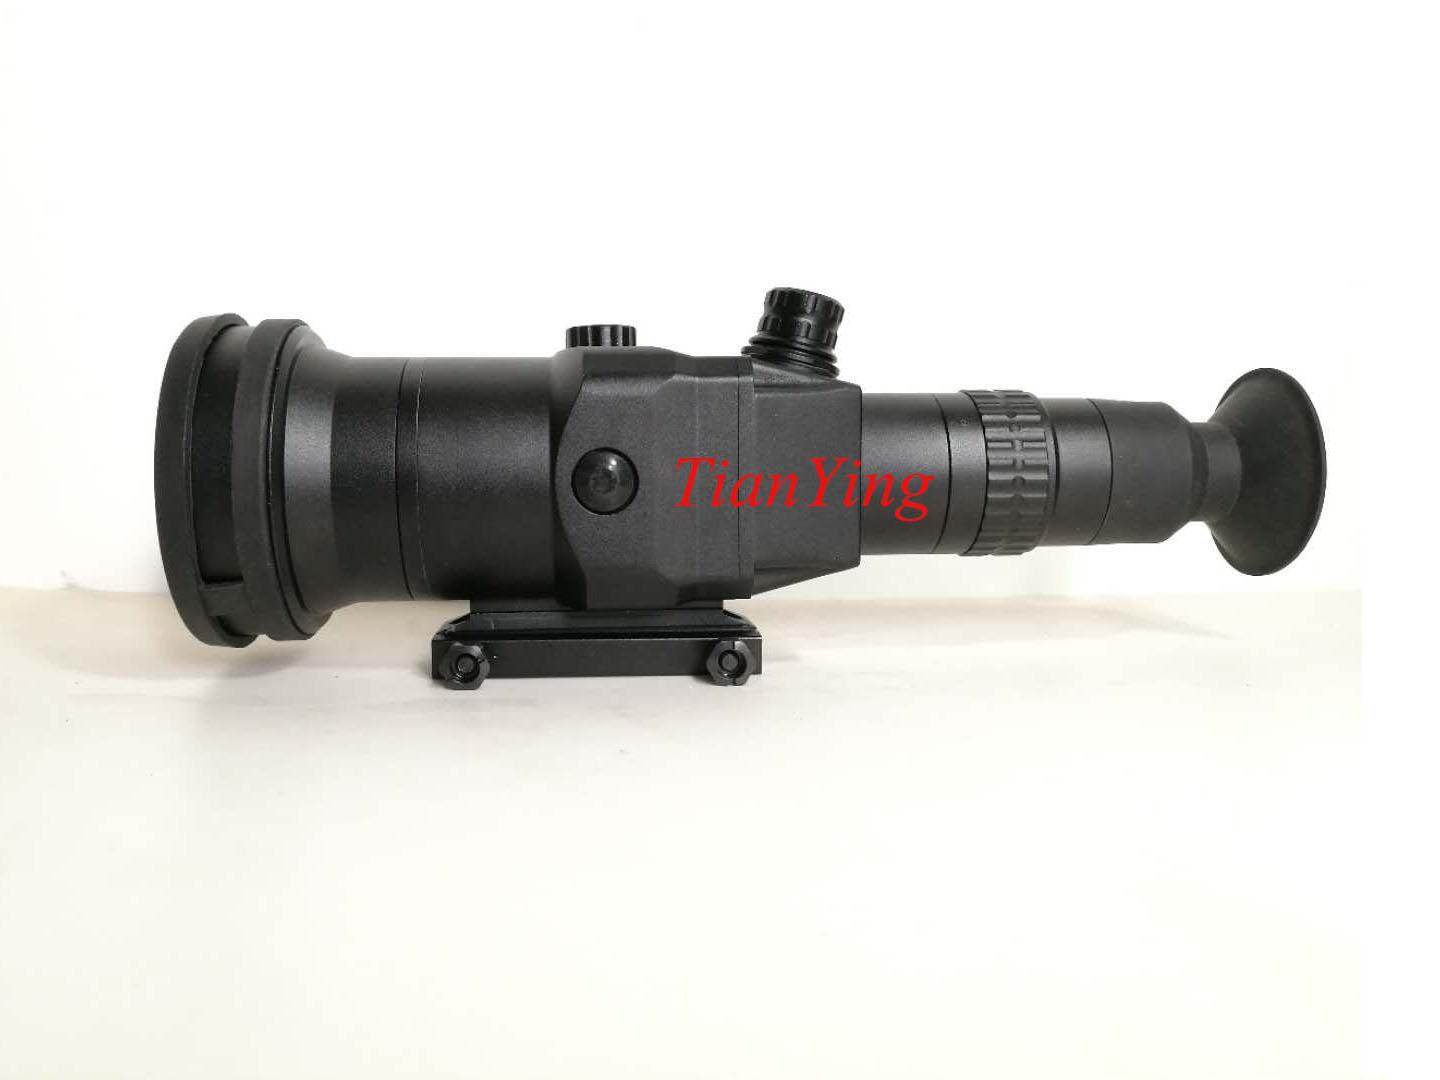 T90 .50 Caliber Sniper Thermal Weapon Sight Night Vision Riflescope -1